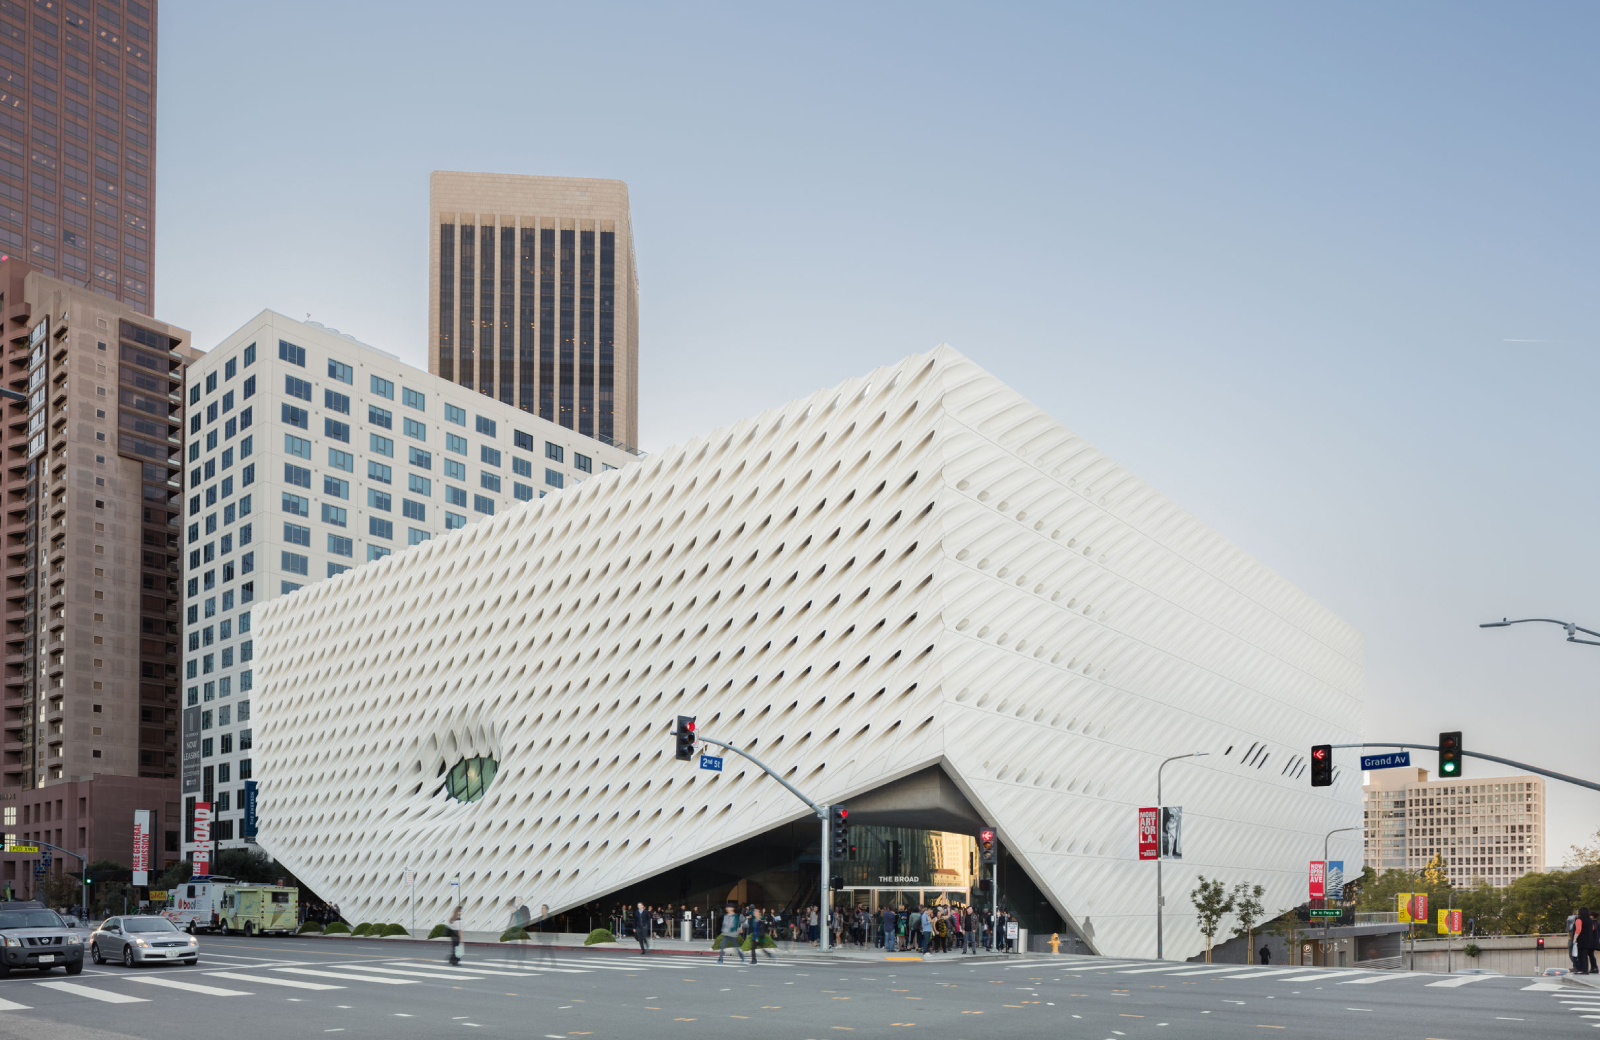 Here's How to Make the Most of Your Visit to The Broad